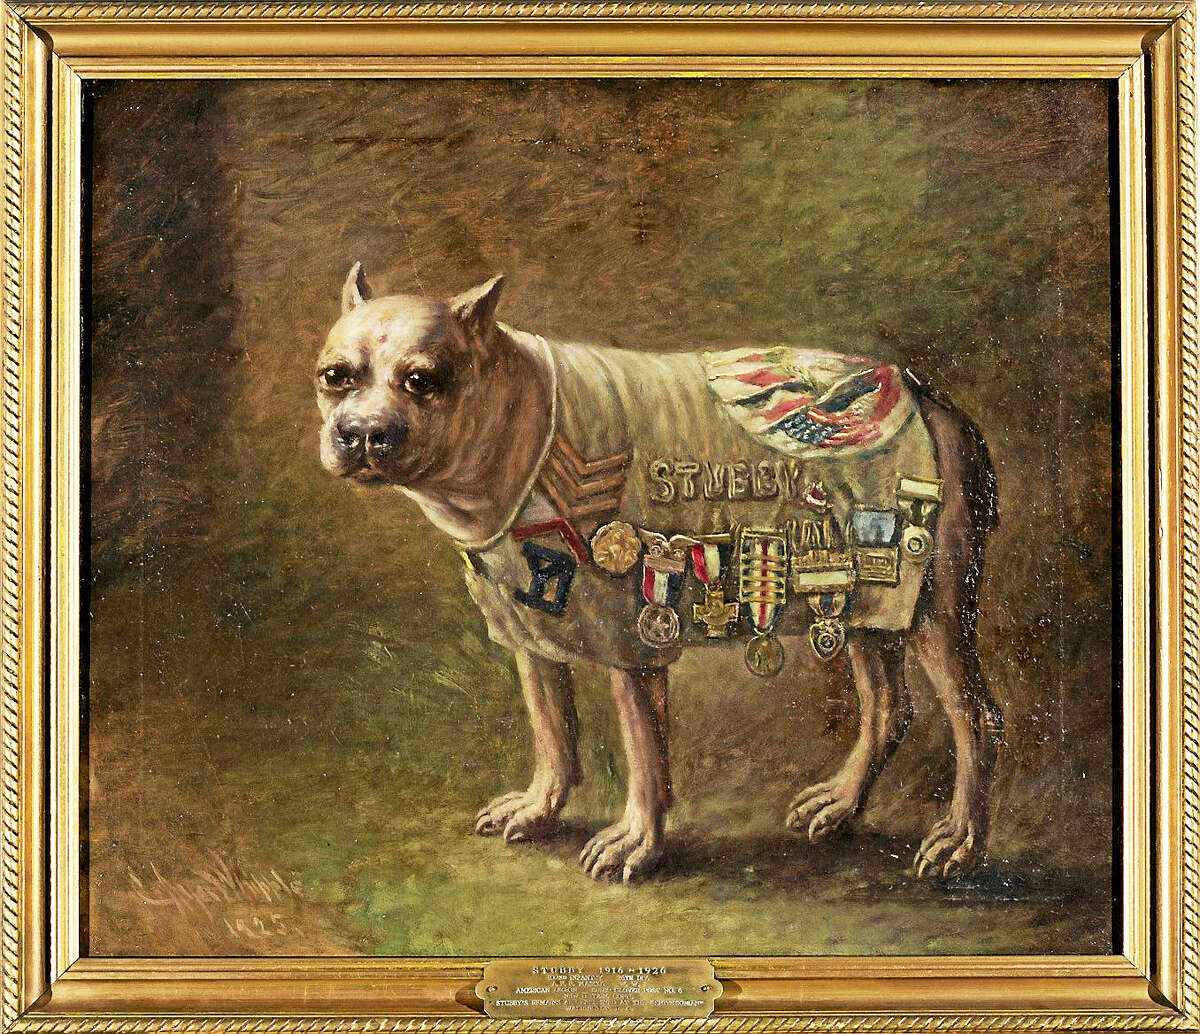 Charles Ayer Whipple's portrait of New Haven's Stubby, the most decorated animal of World War I.